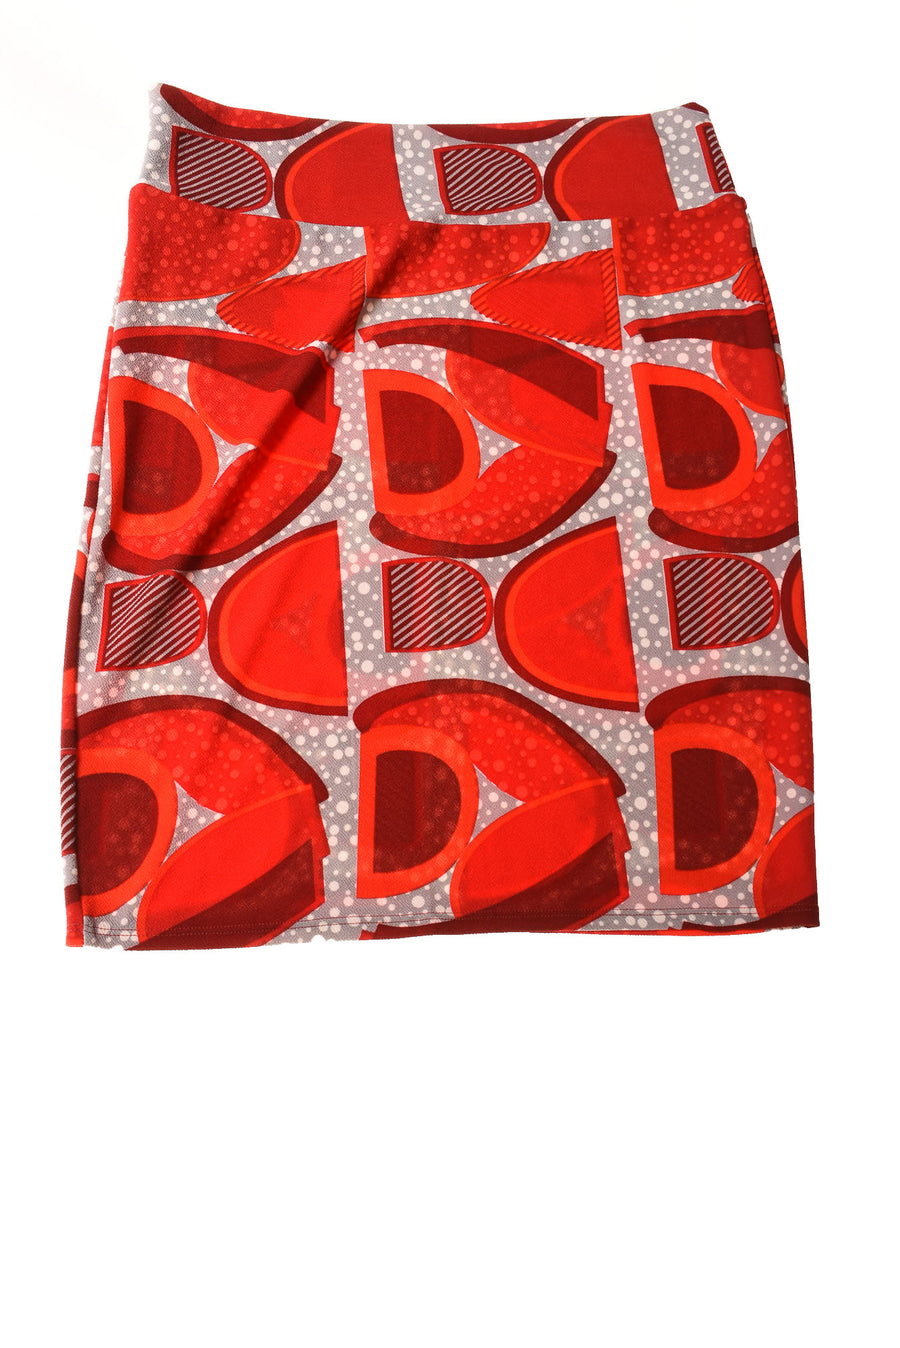 NEW Lula Roe Women's Skirt 3XL Red & Gray / Print